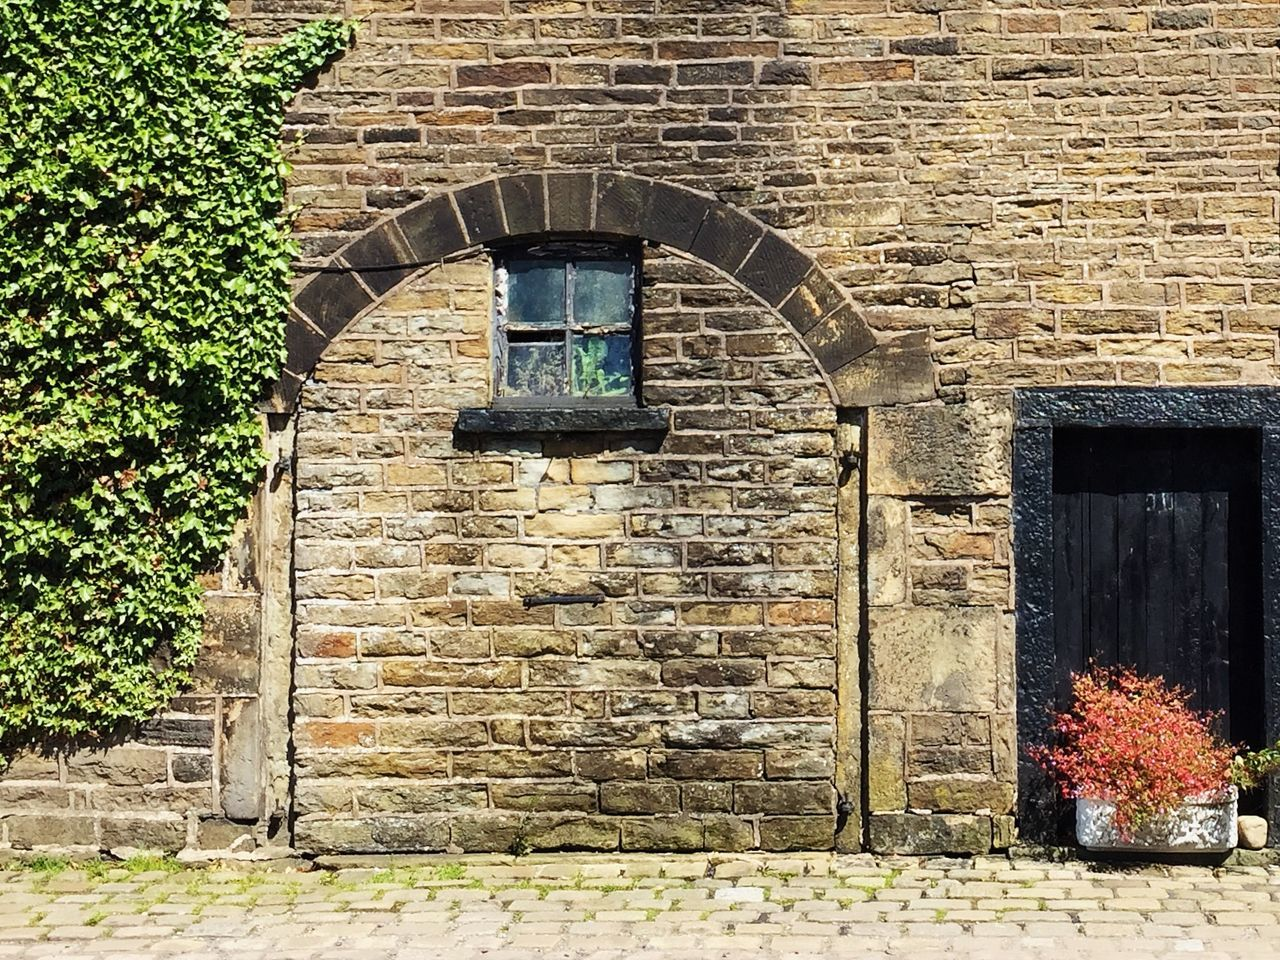 architecture, built structure, building exterior, building, wall, entrance, nature, plant, day, brick, no people, brick wall, door, house, window, arch, wall - building feature, flower, flowering plant, outdoors, stone wall